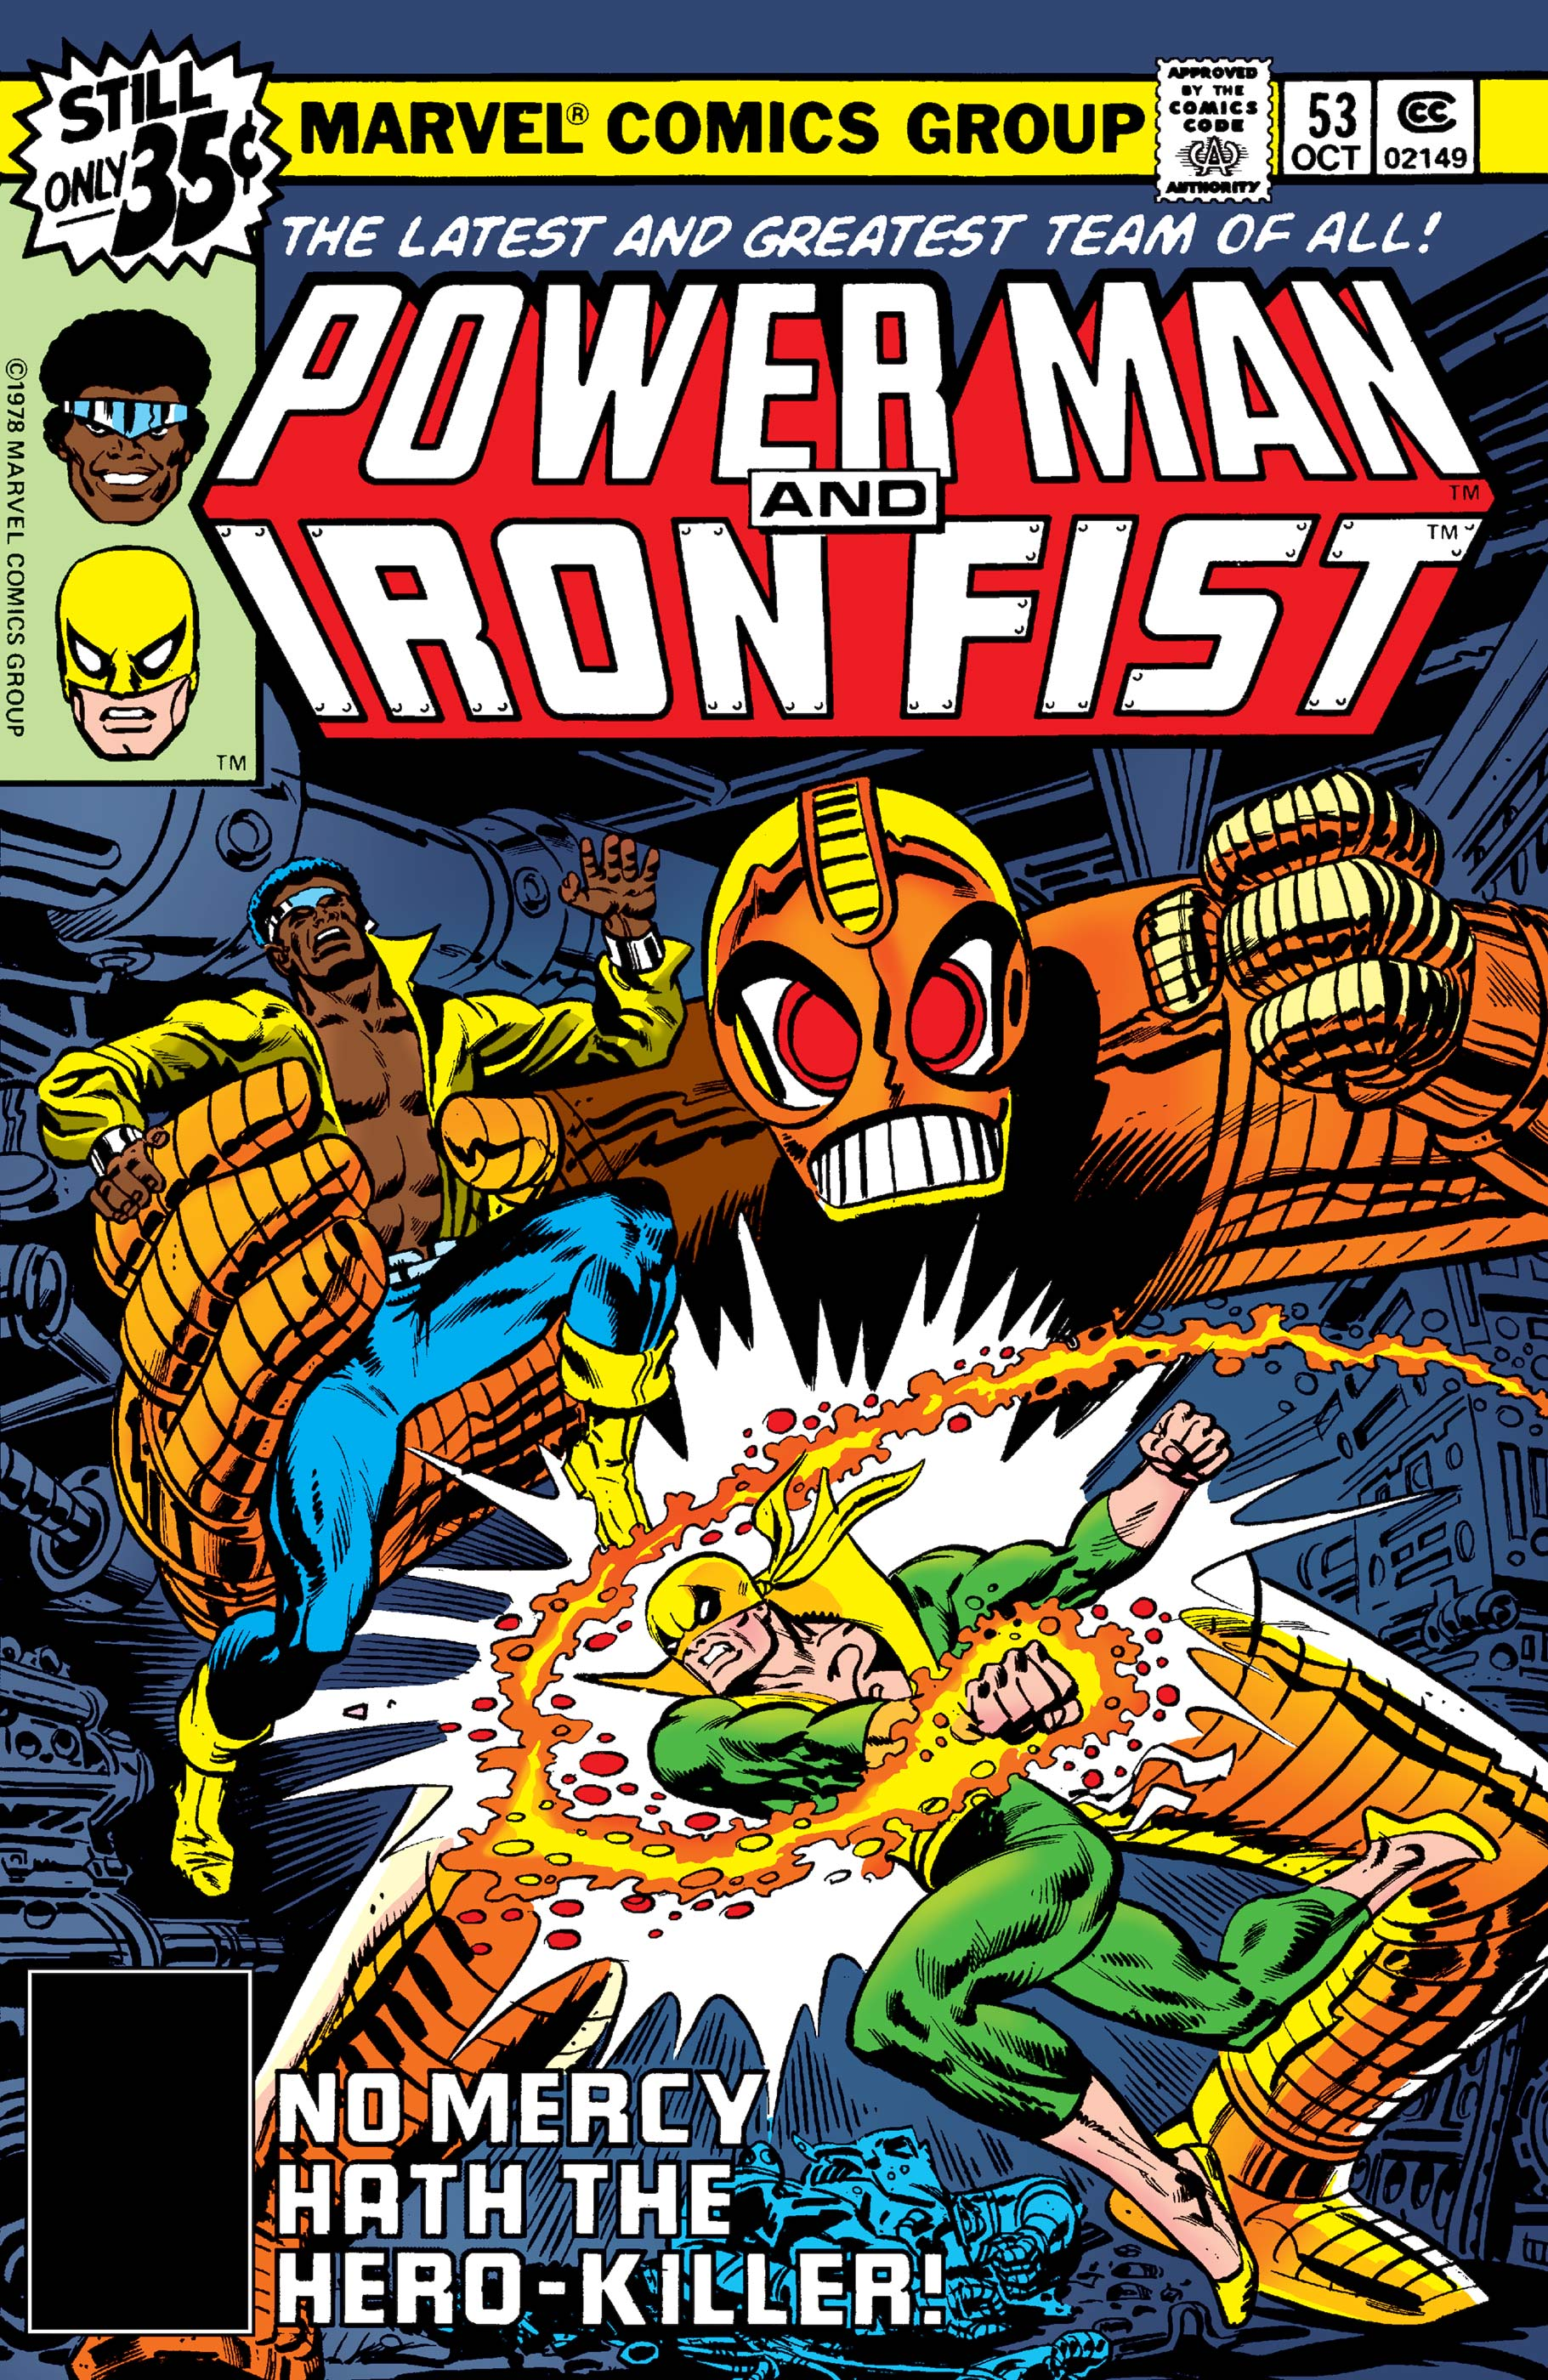 Power Man and Iron Fist (1978) #53